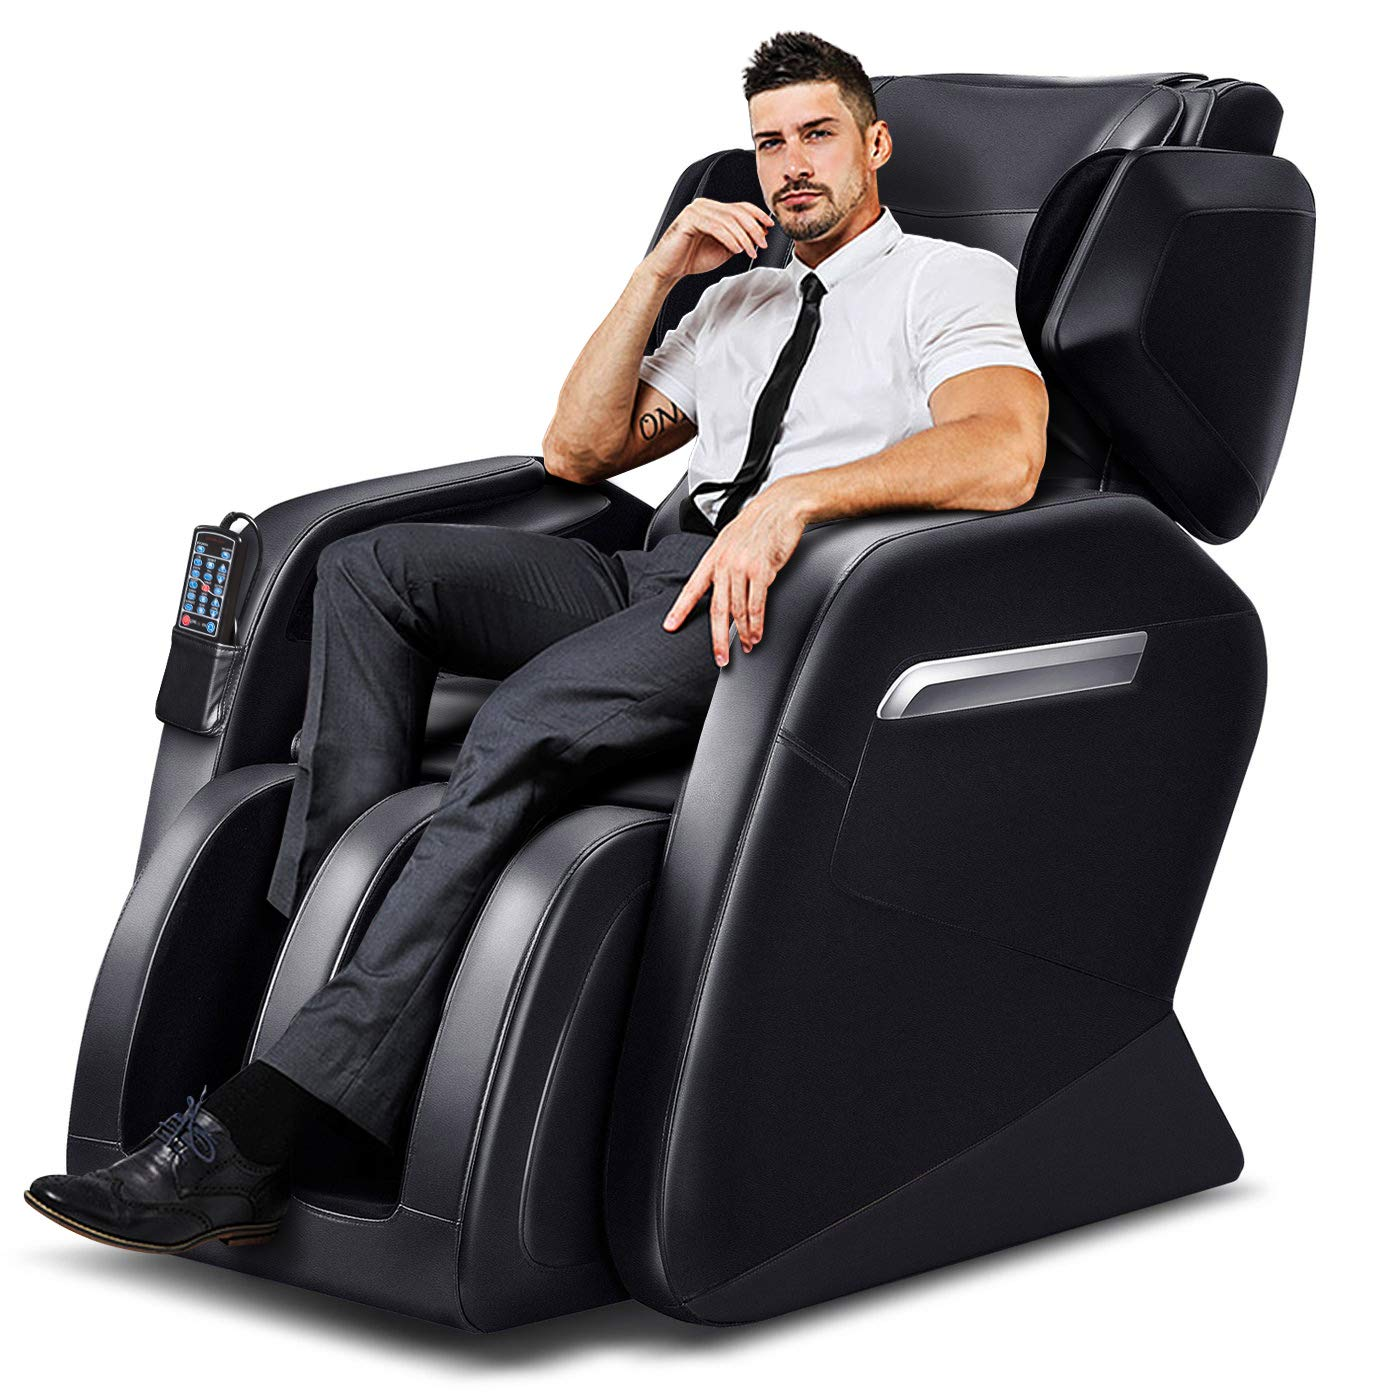 Stupendous Tinycooper Massage Chairs By Ootori Zero Gravity Massage Chair Full Body Massage Chair With Lower Back Heating And Foot Roller Black Dailytribune Chair Design For Home Dailytribuneorg